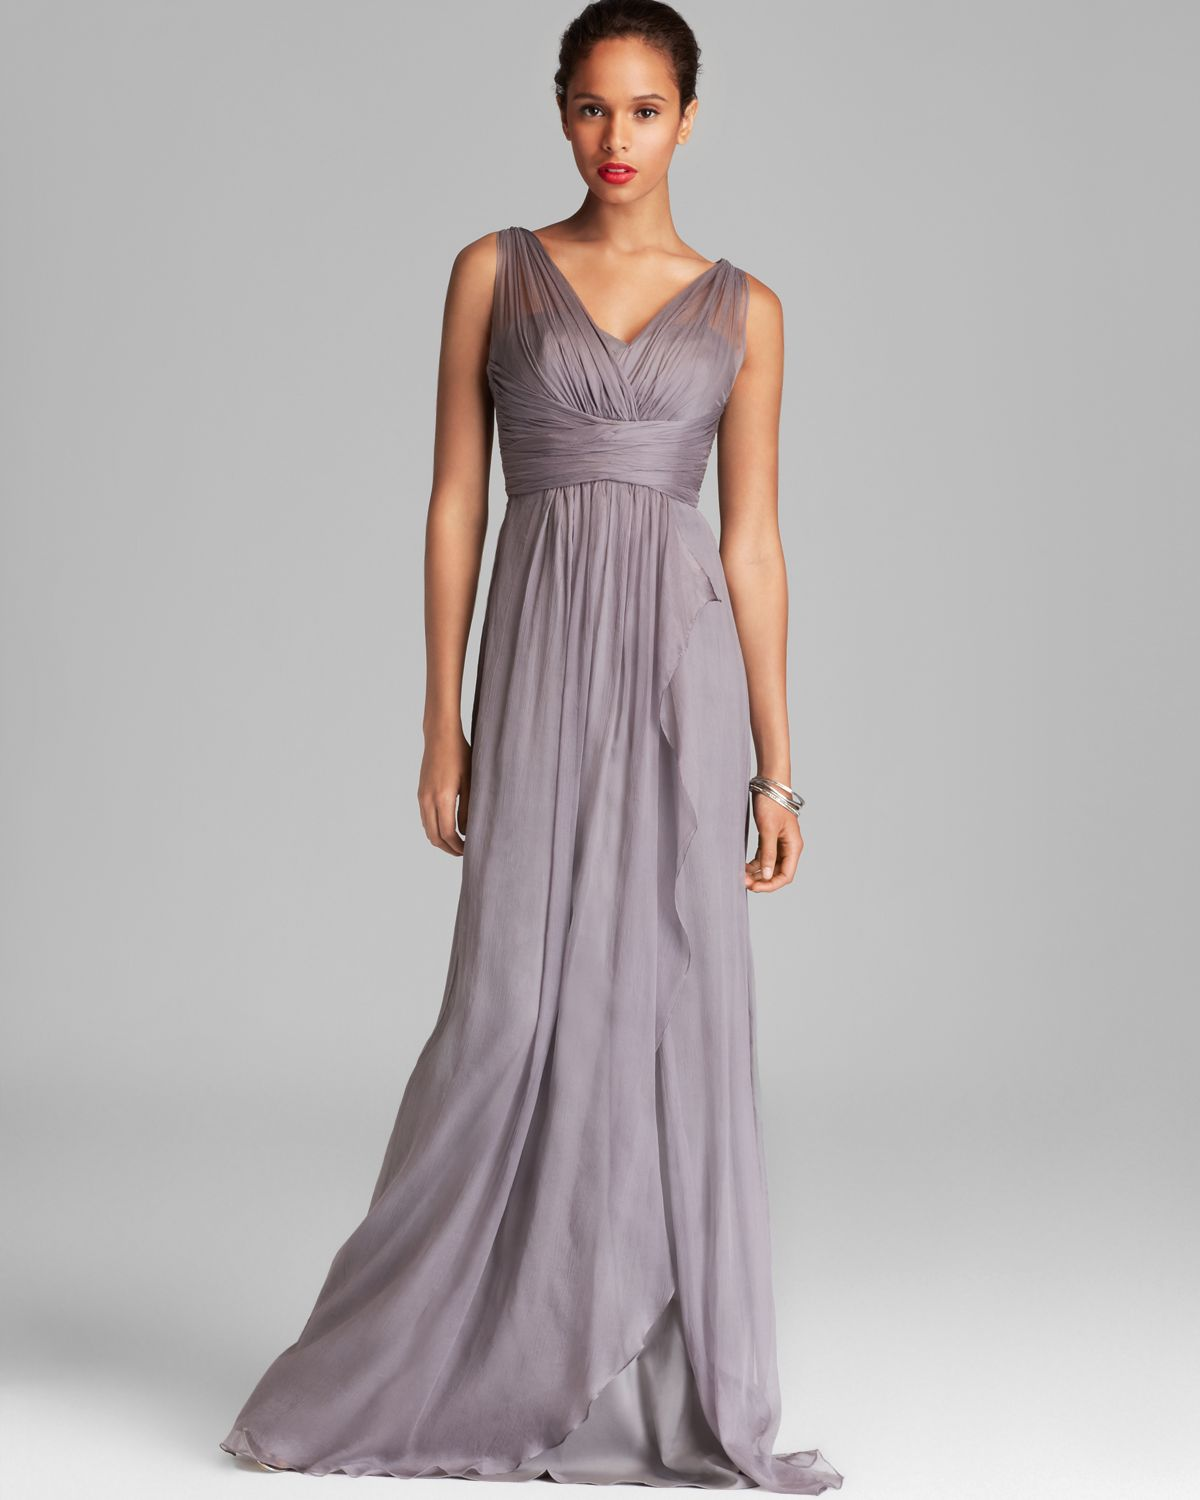 Beautiful Amsale Crinkled Silk Chiffon Gown Images - Wedding and ...